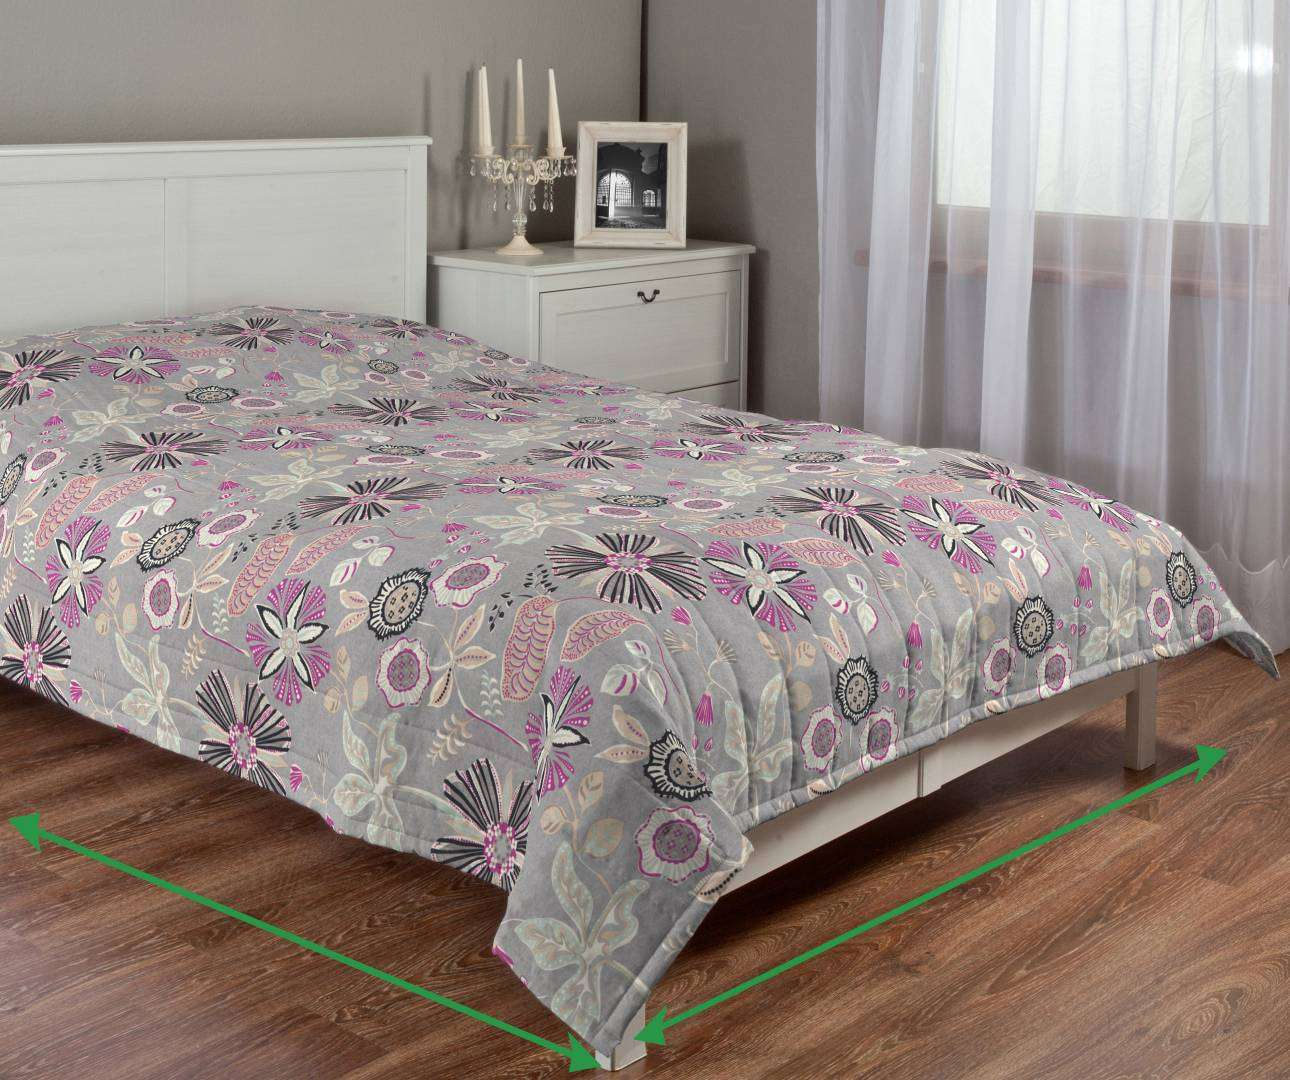 Quilted throw (vertical quilt pattern) in collection Etna , fabric: 705-13